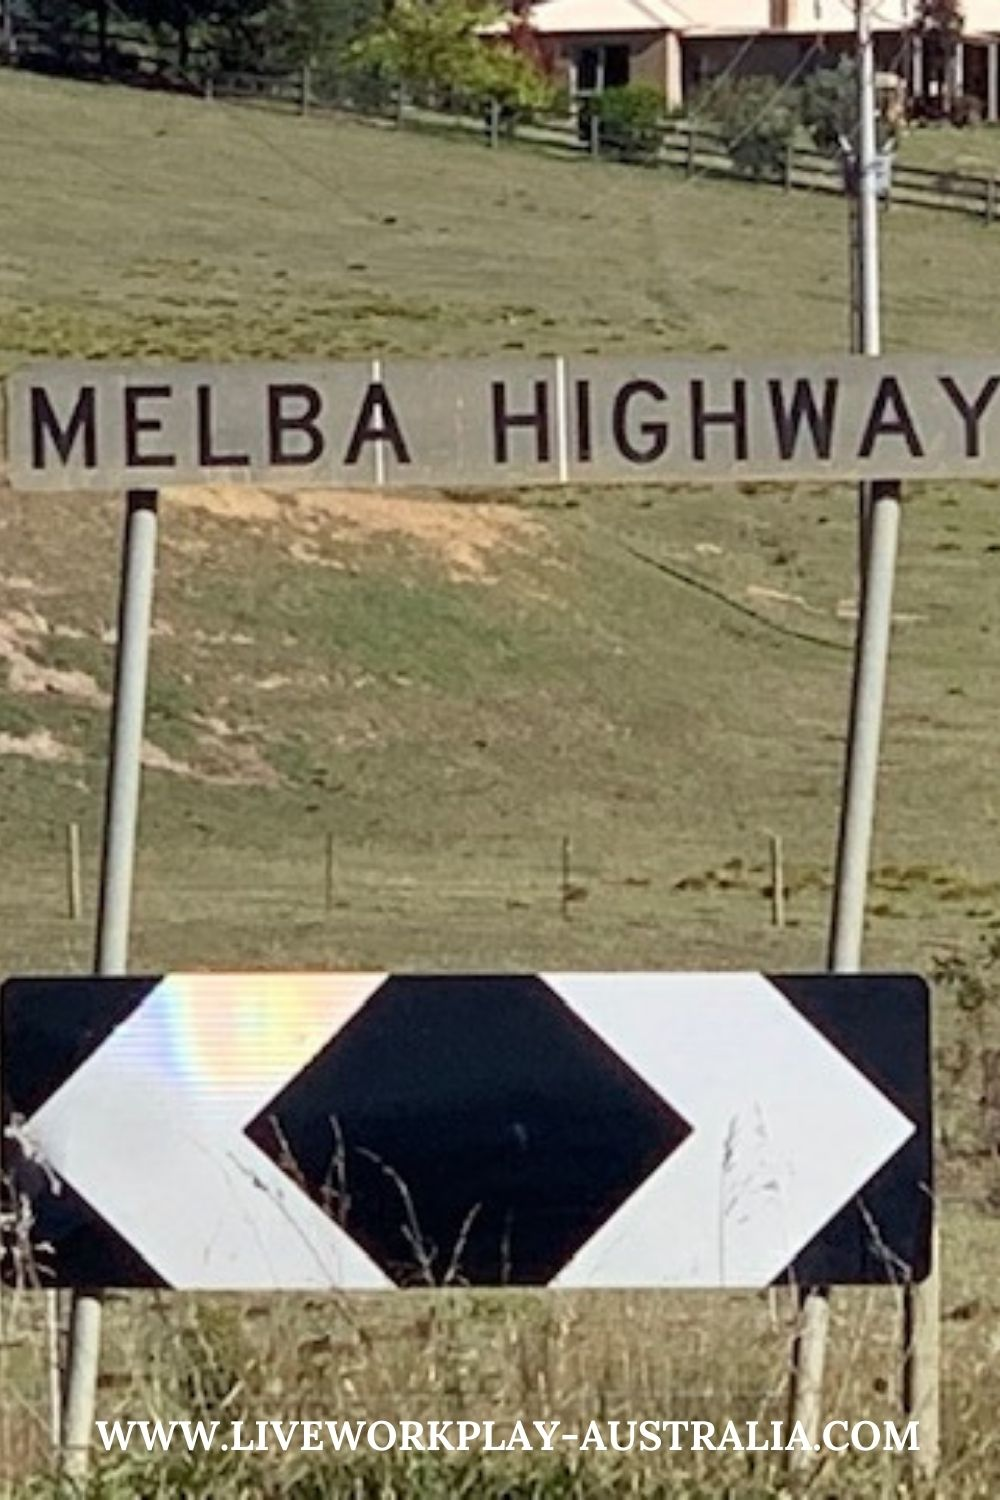 Melba Highway Is A Highway East Of Melbourne Linking Lilydale To Yea.